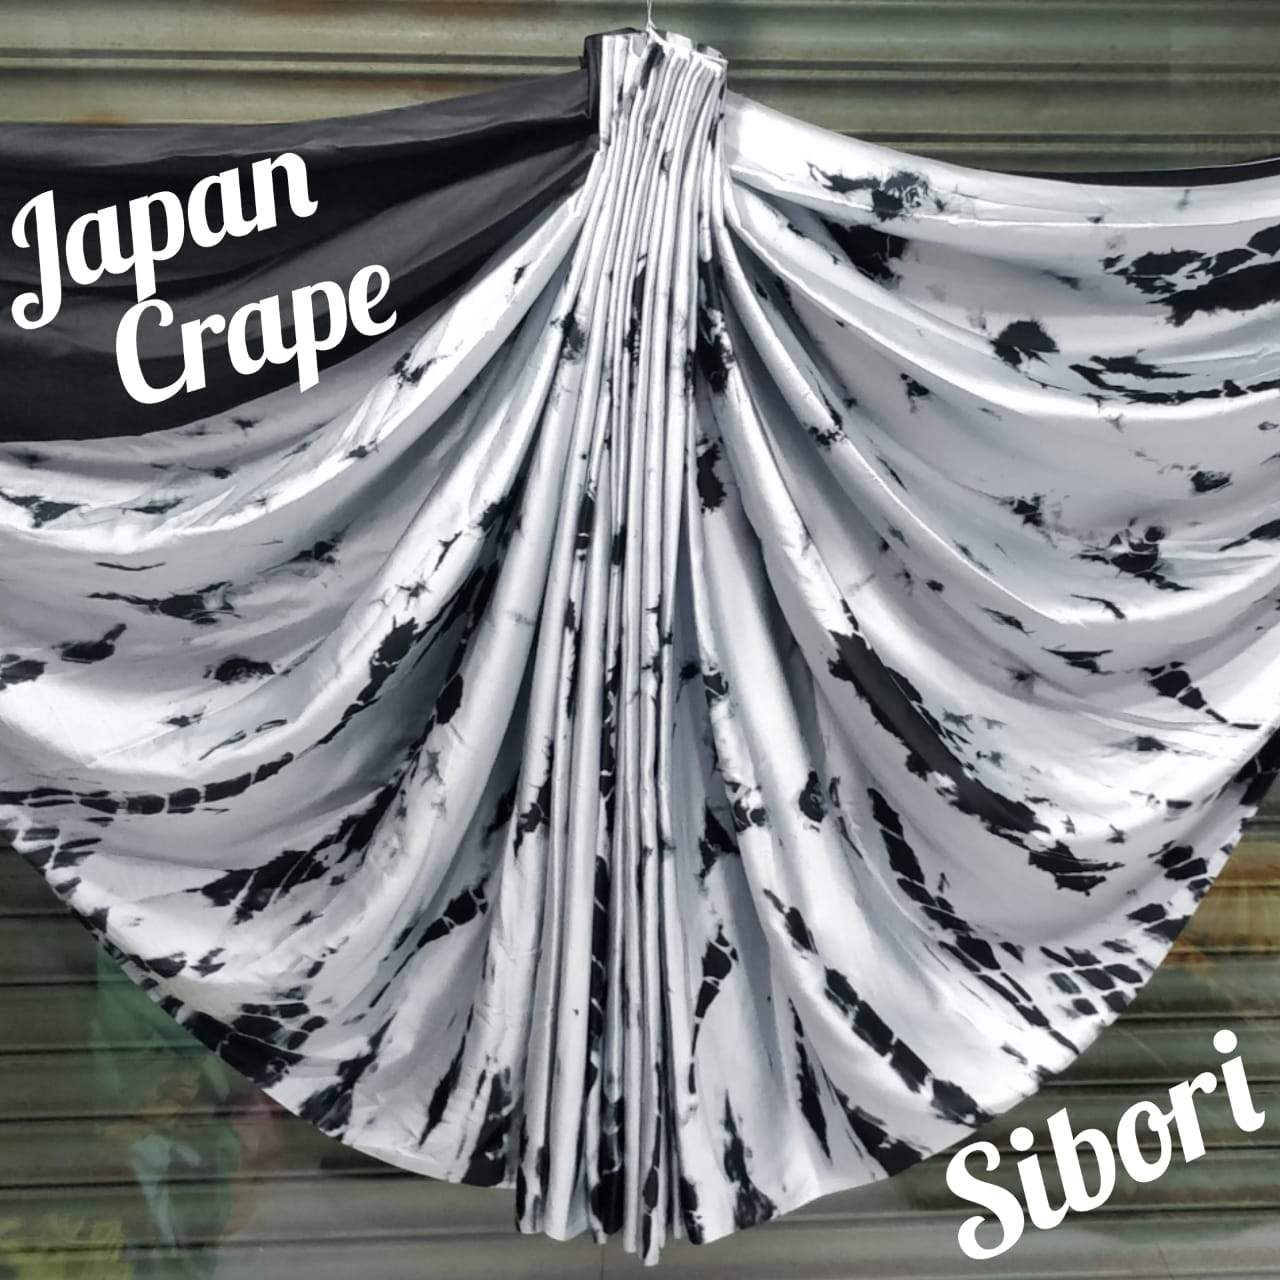 Japan crape silk saree 5009